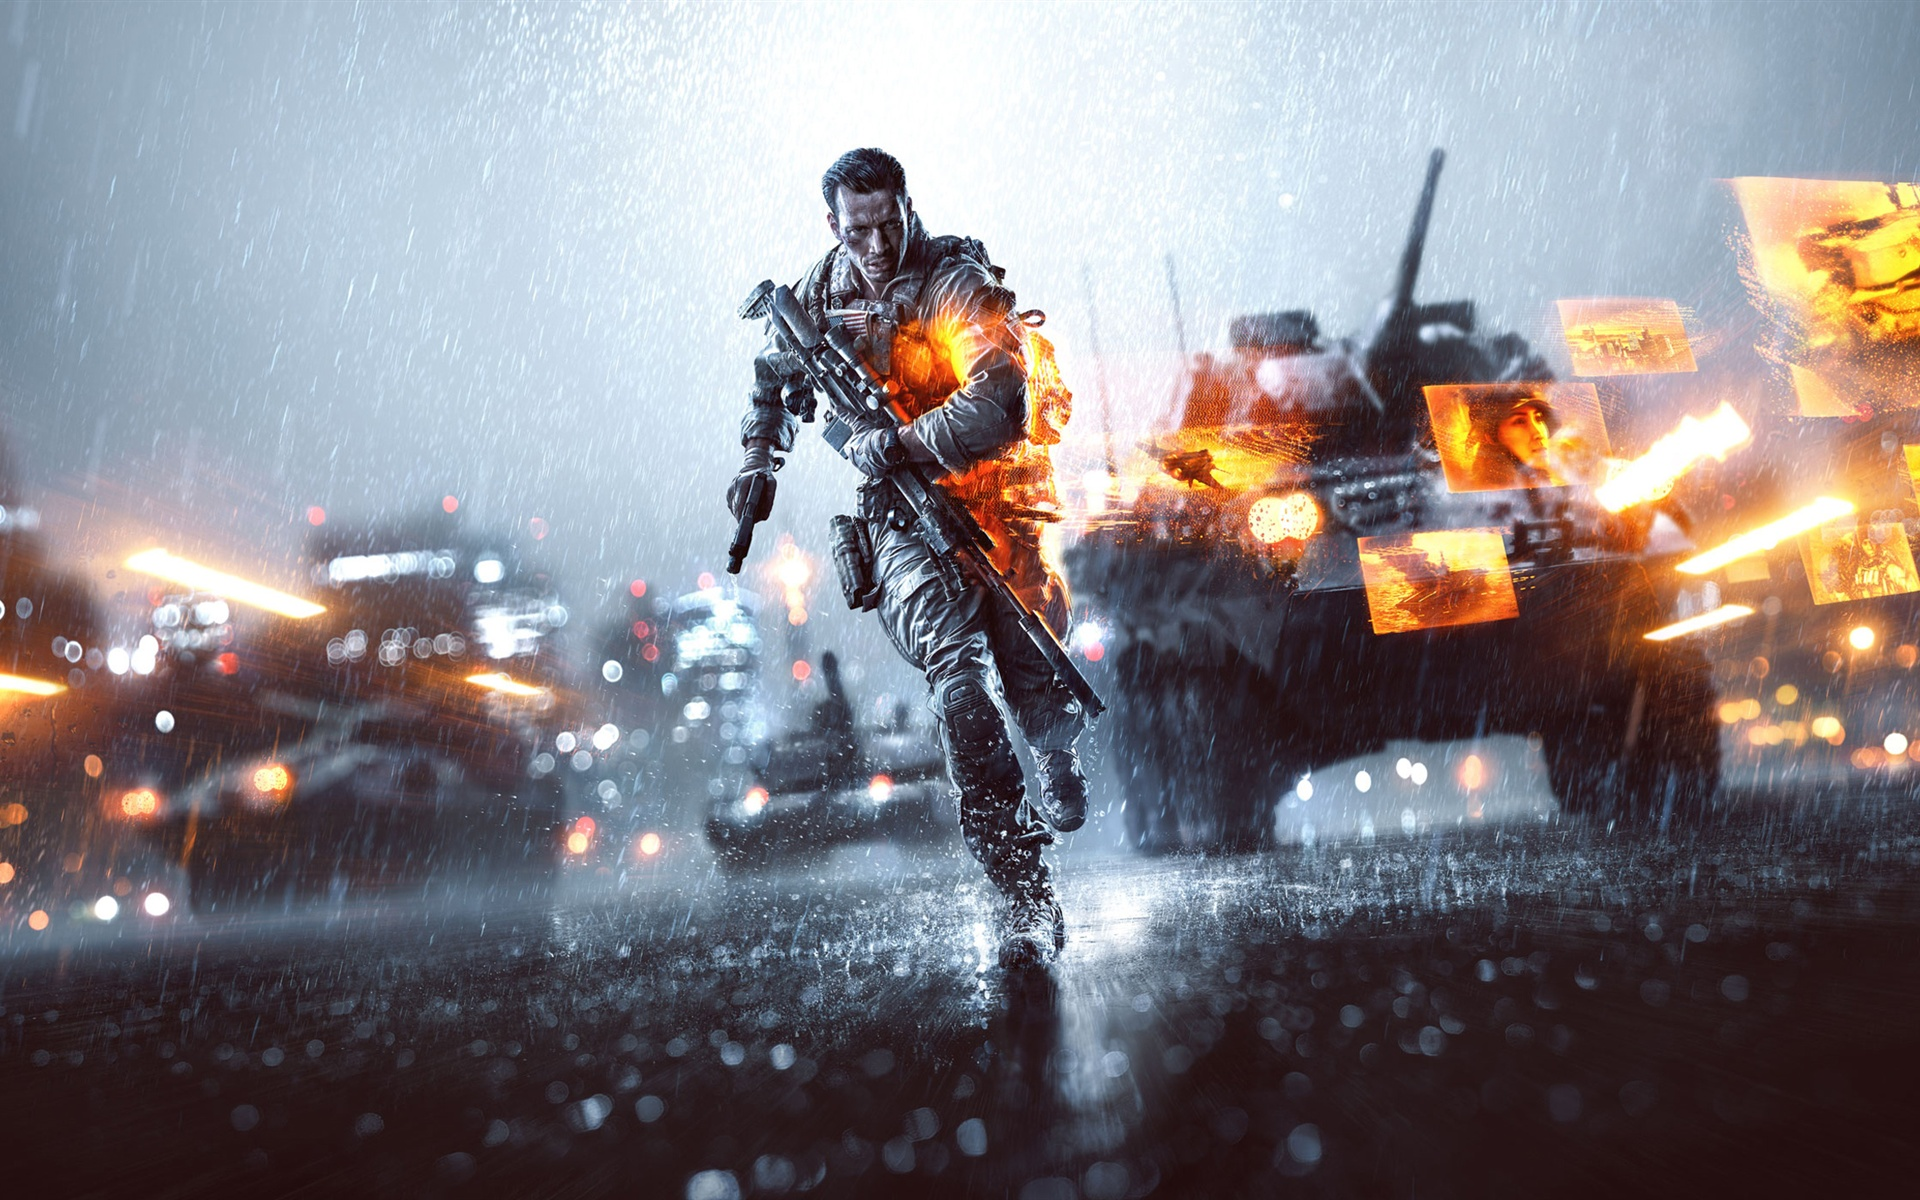 Battlefield-4-the-rainy-day-night-city_1920x1200